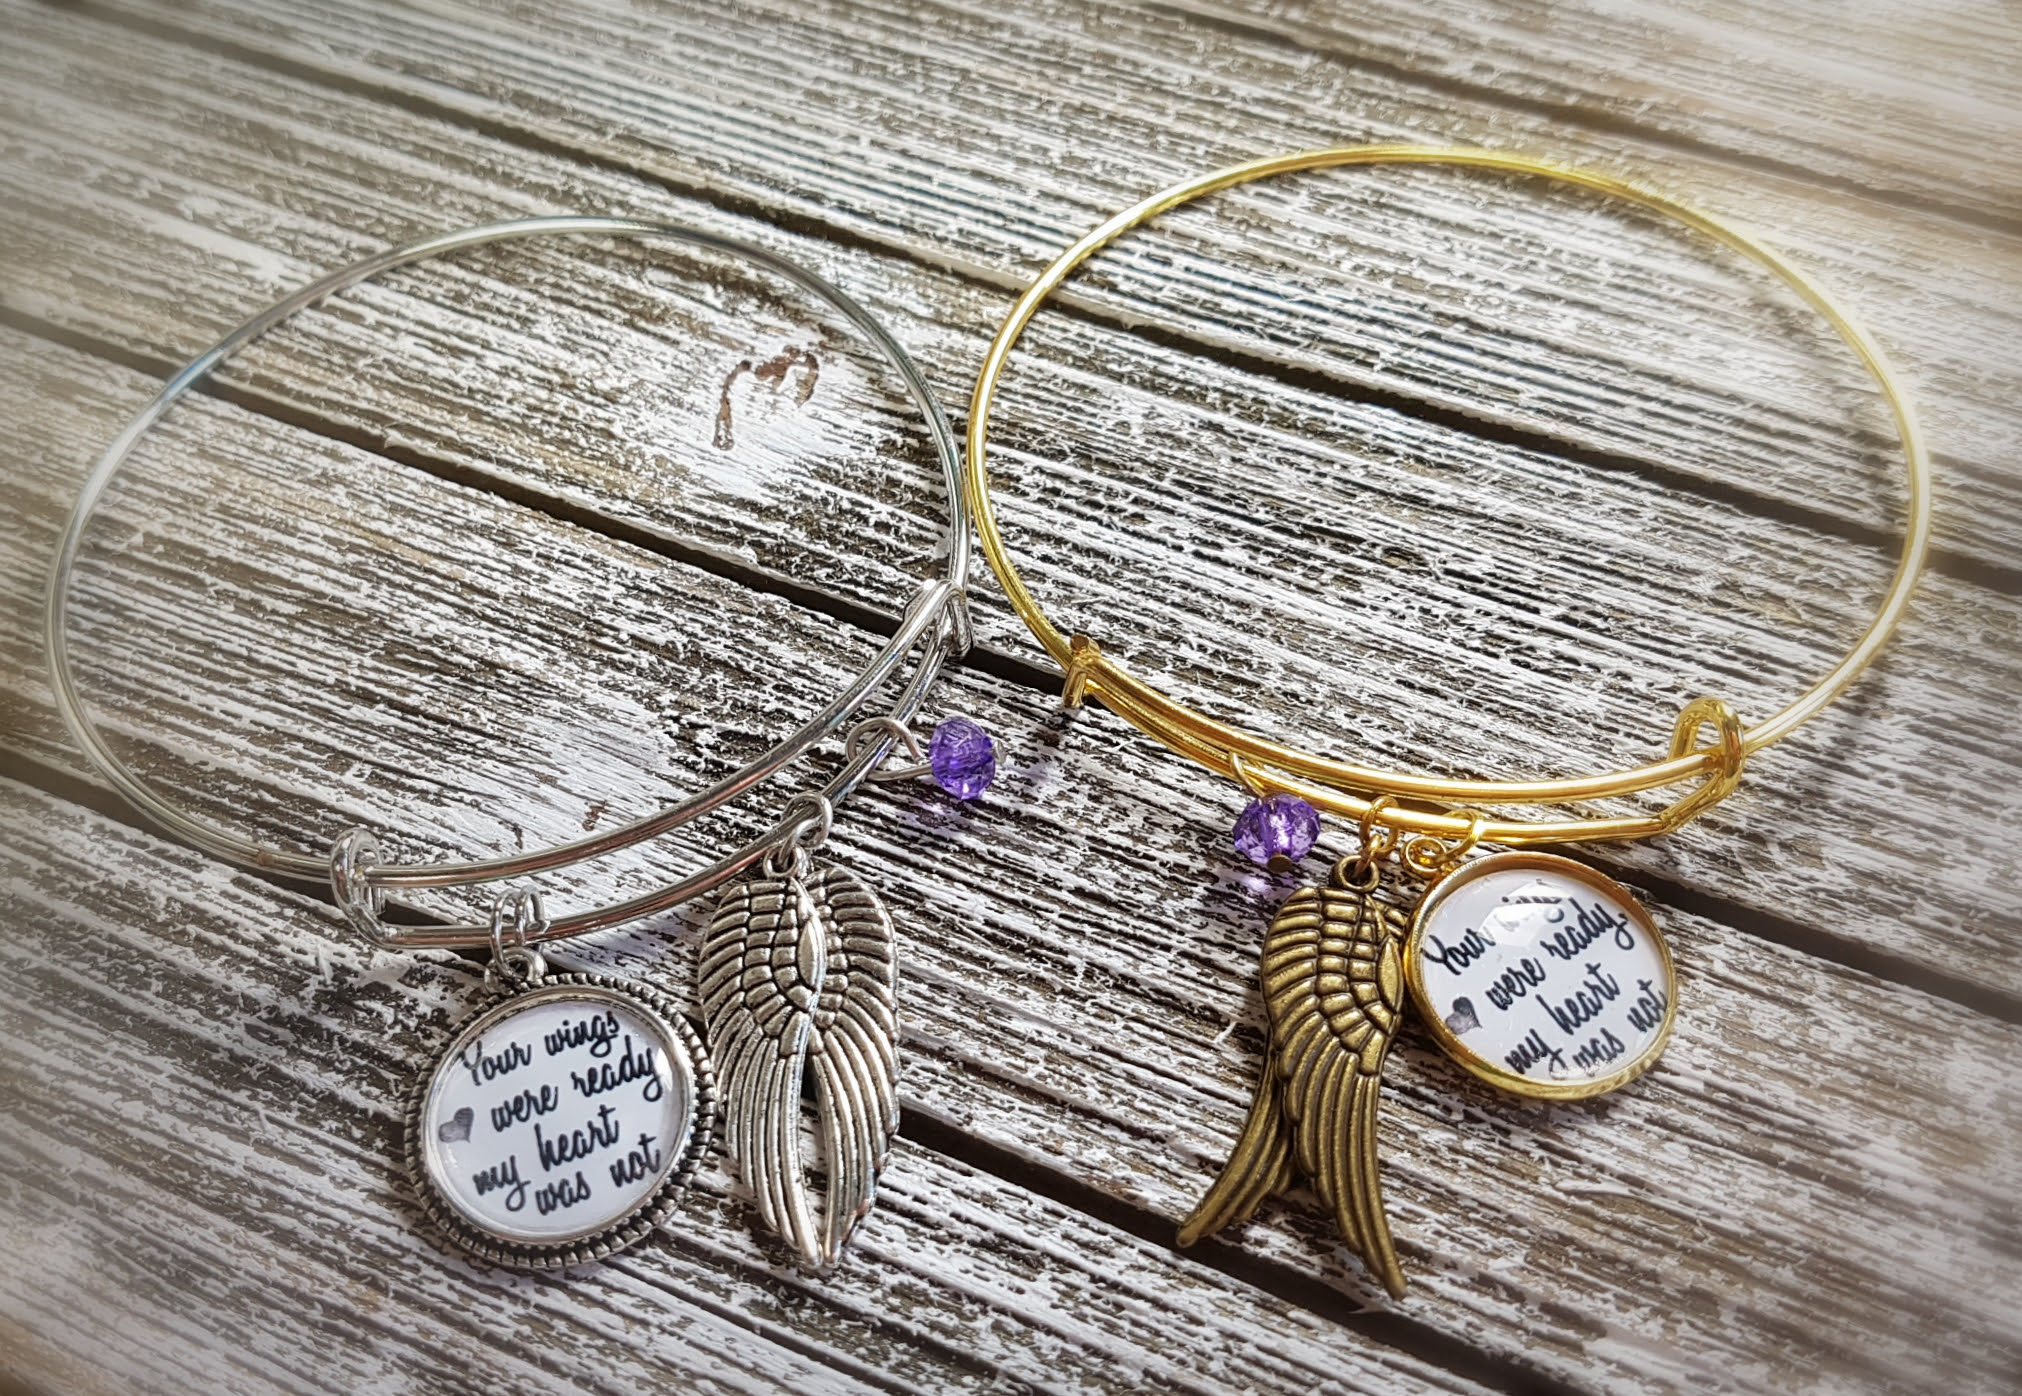 Personalized Familymemorialbanglecharmbracelet With Quote Or